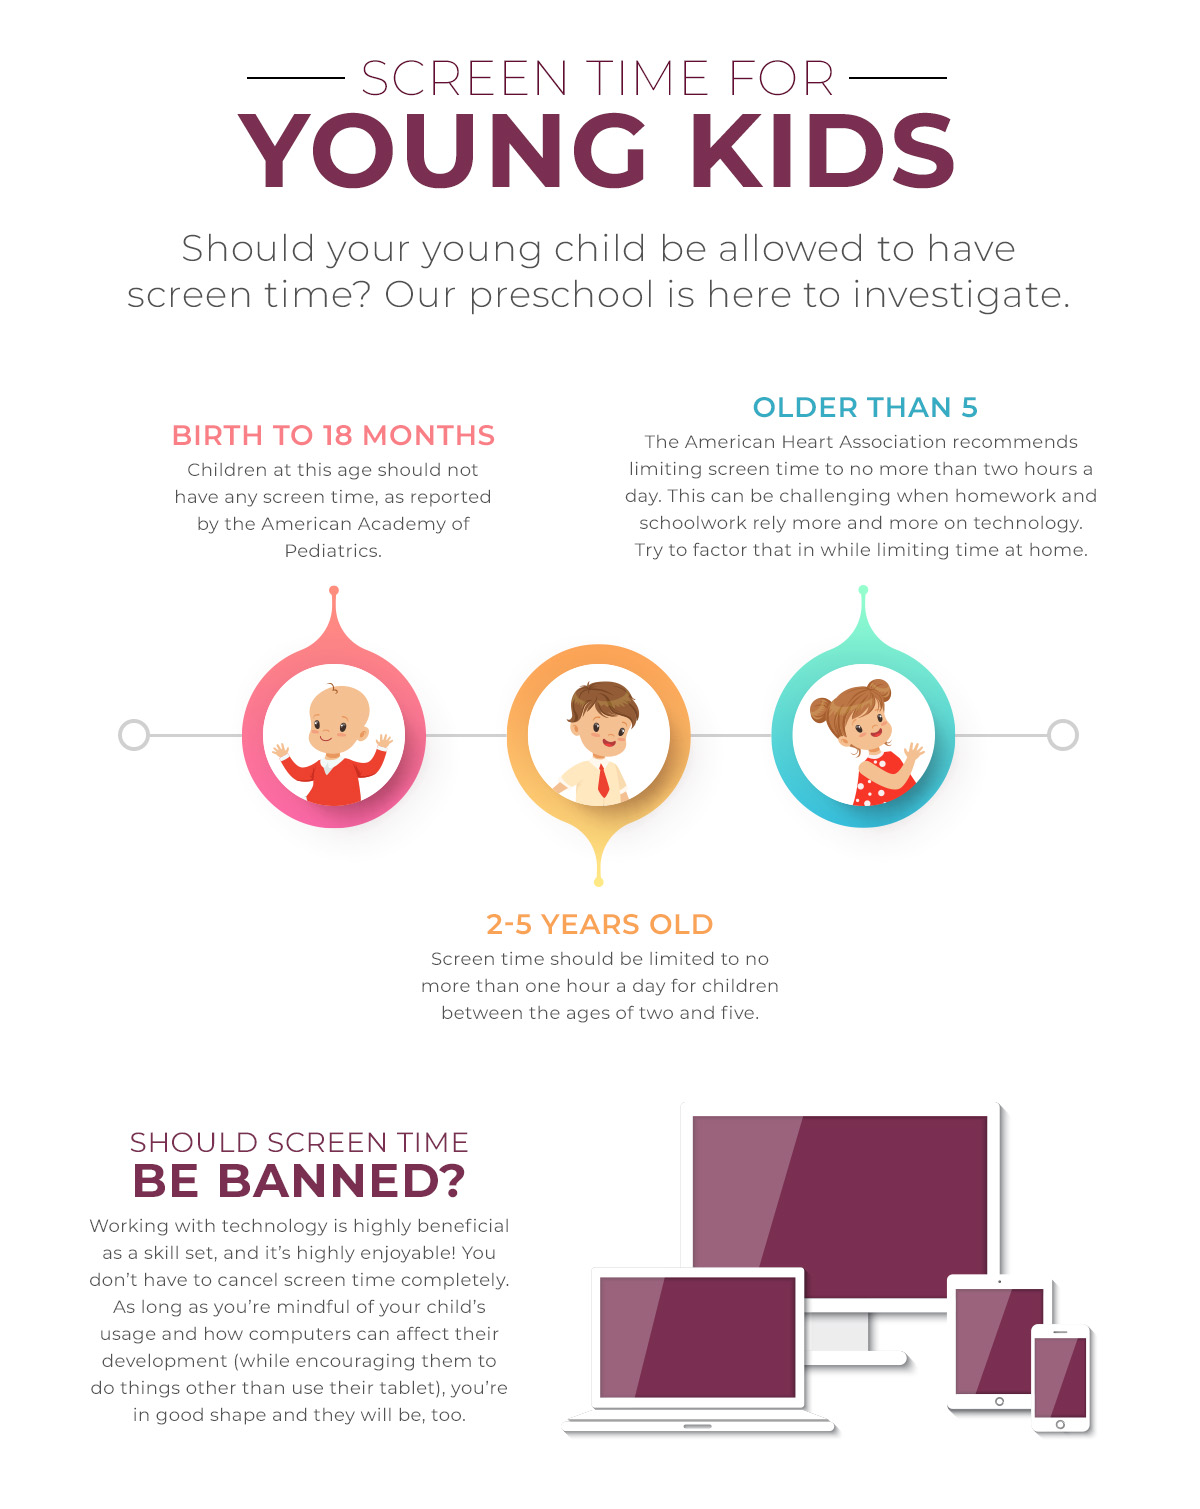 Why Is Screentime Bad For Young Children >> Preschool San Jose Should Young Kids Have Screen Time